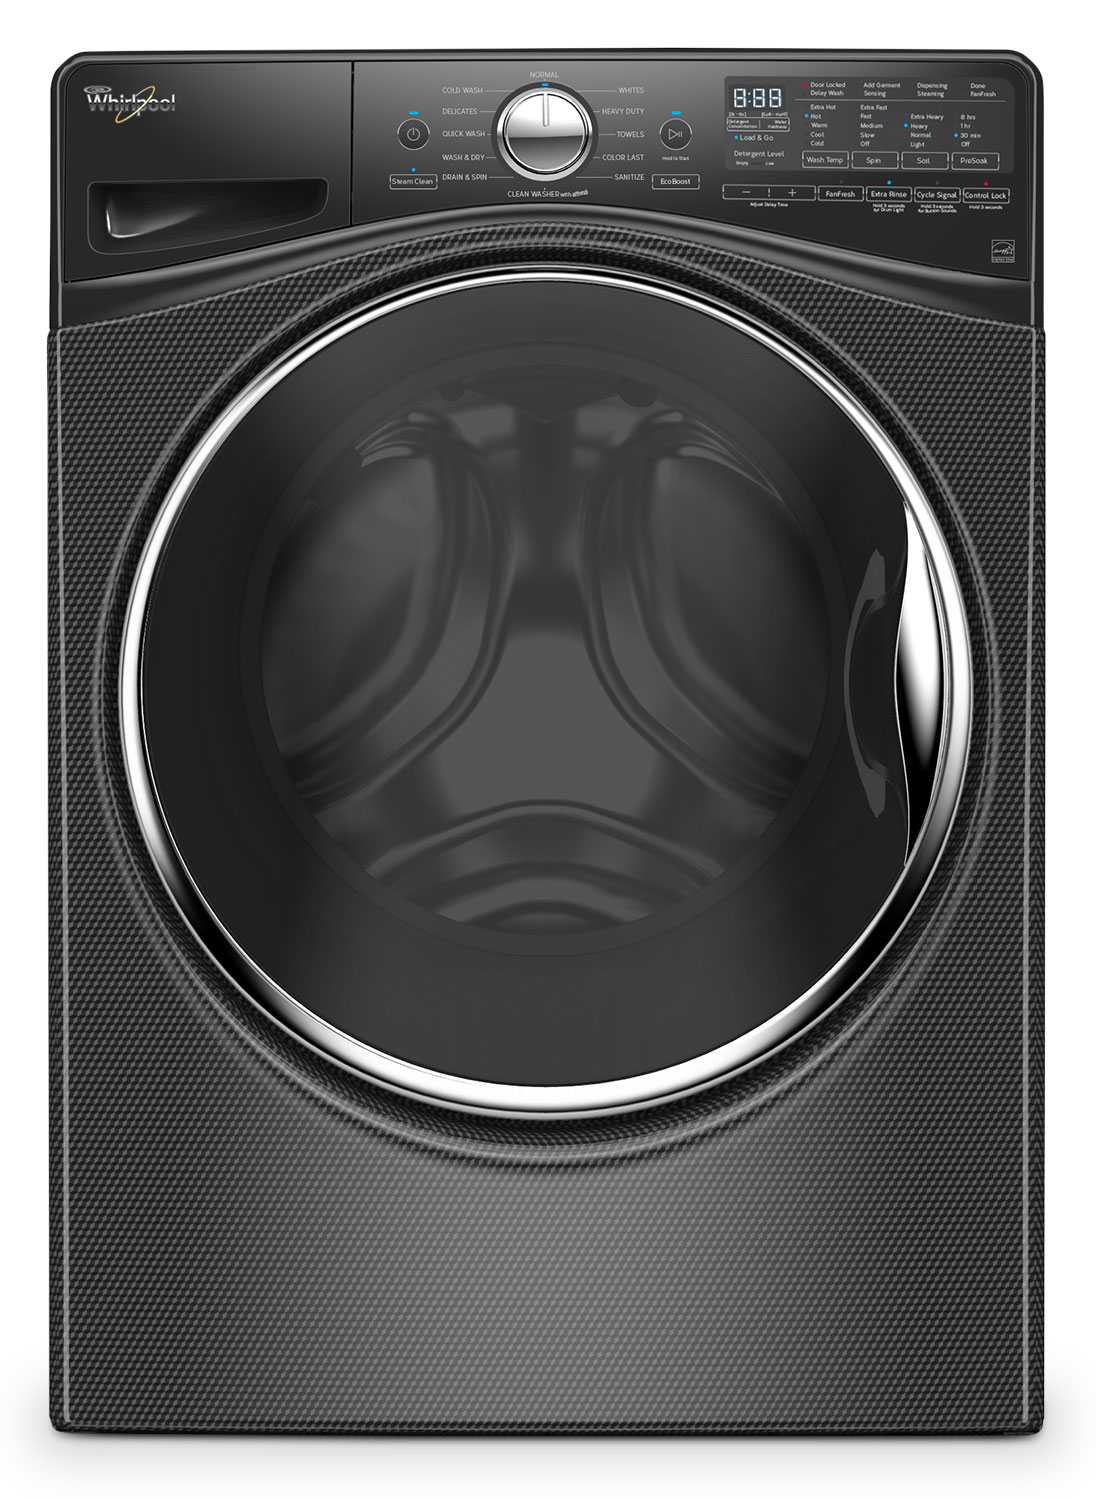 Washers and Dryers - Whirlpool Black Diamond Front-Load Washer (5.2 Cu. Ft.) - WFW92HEFBD